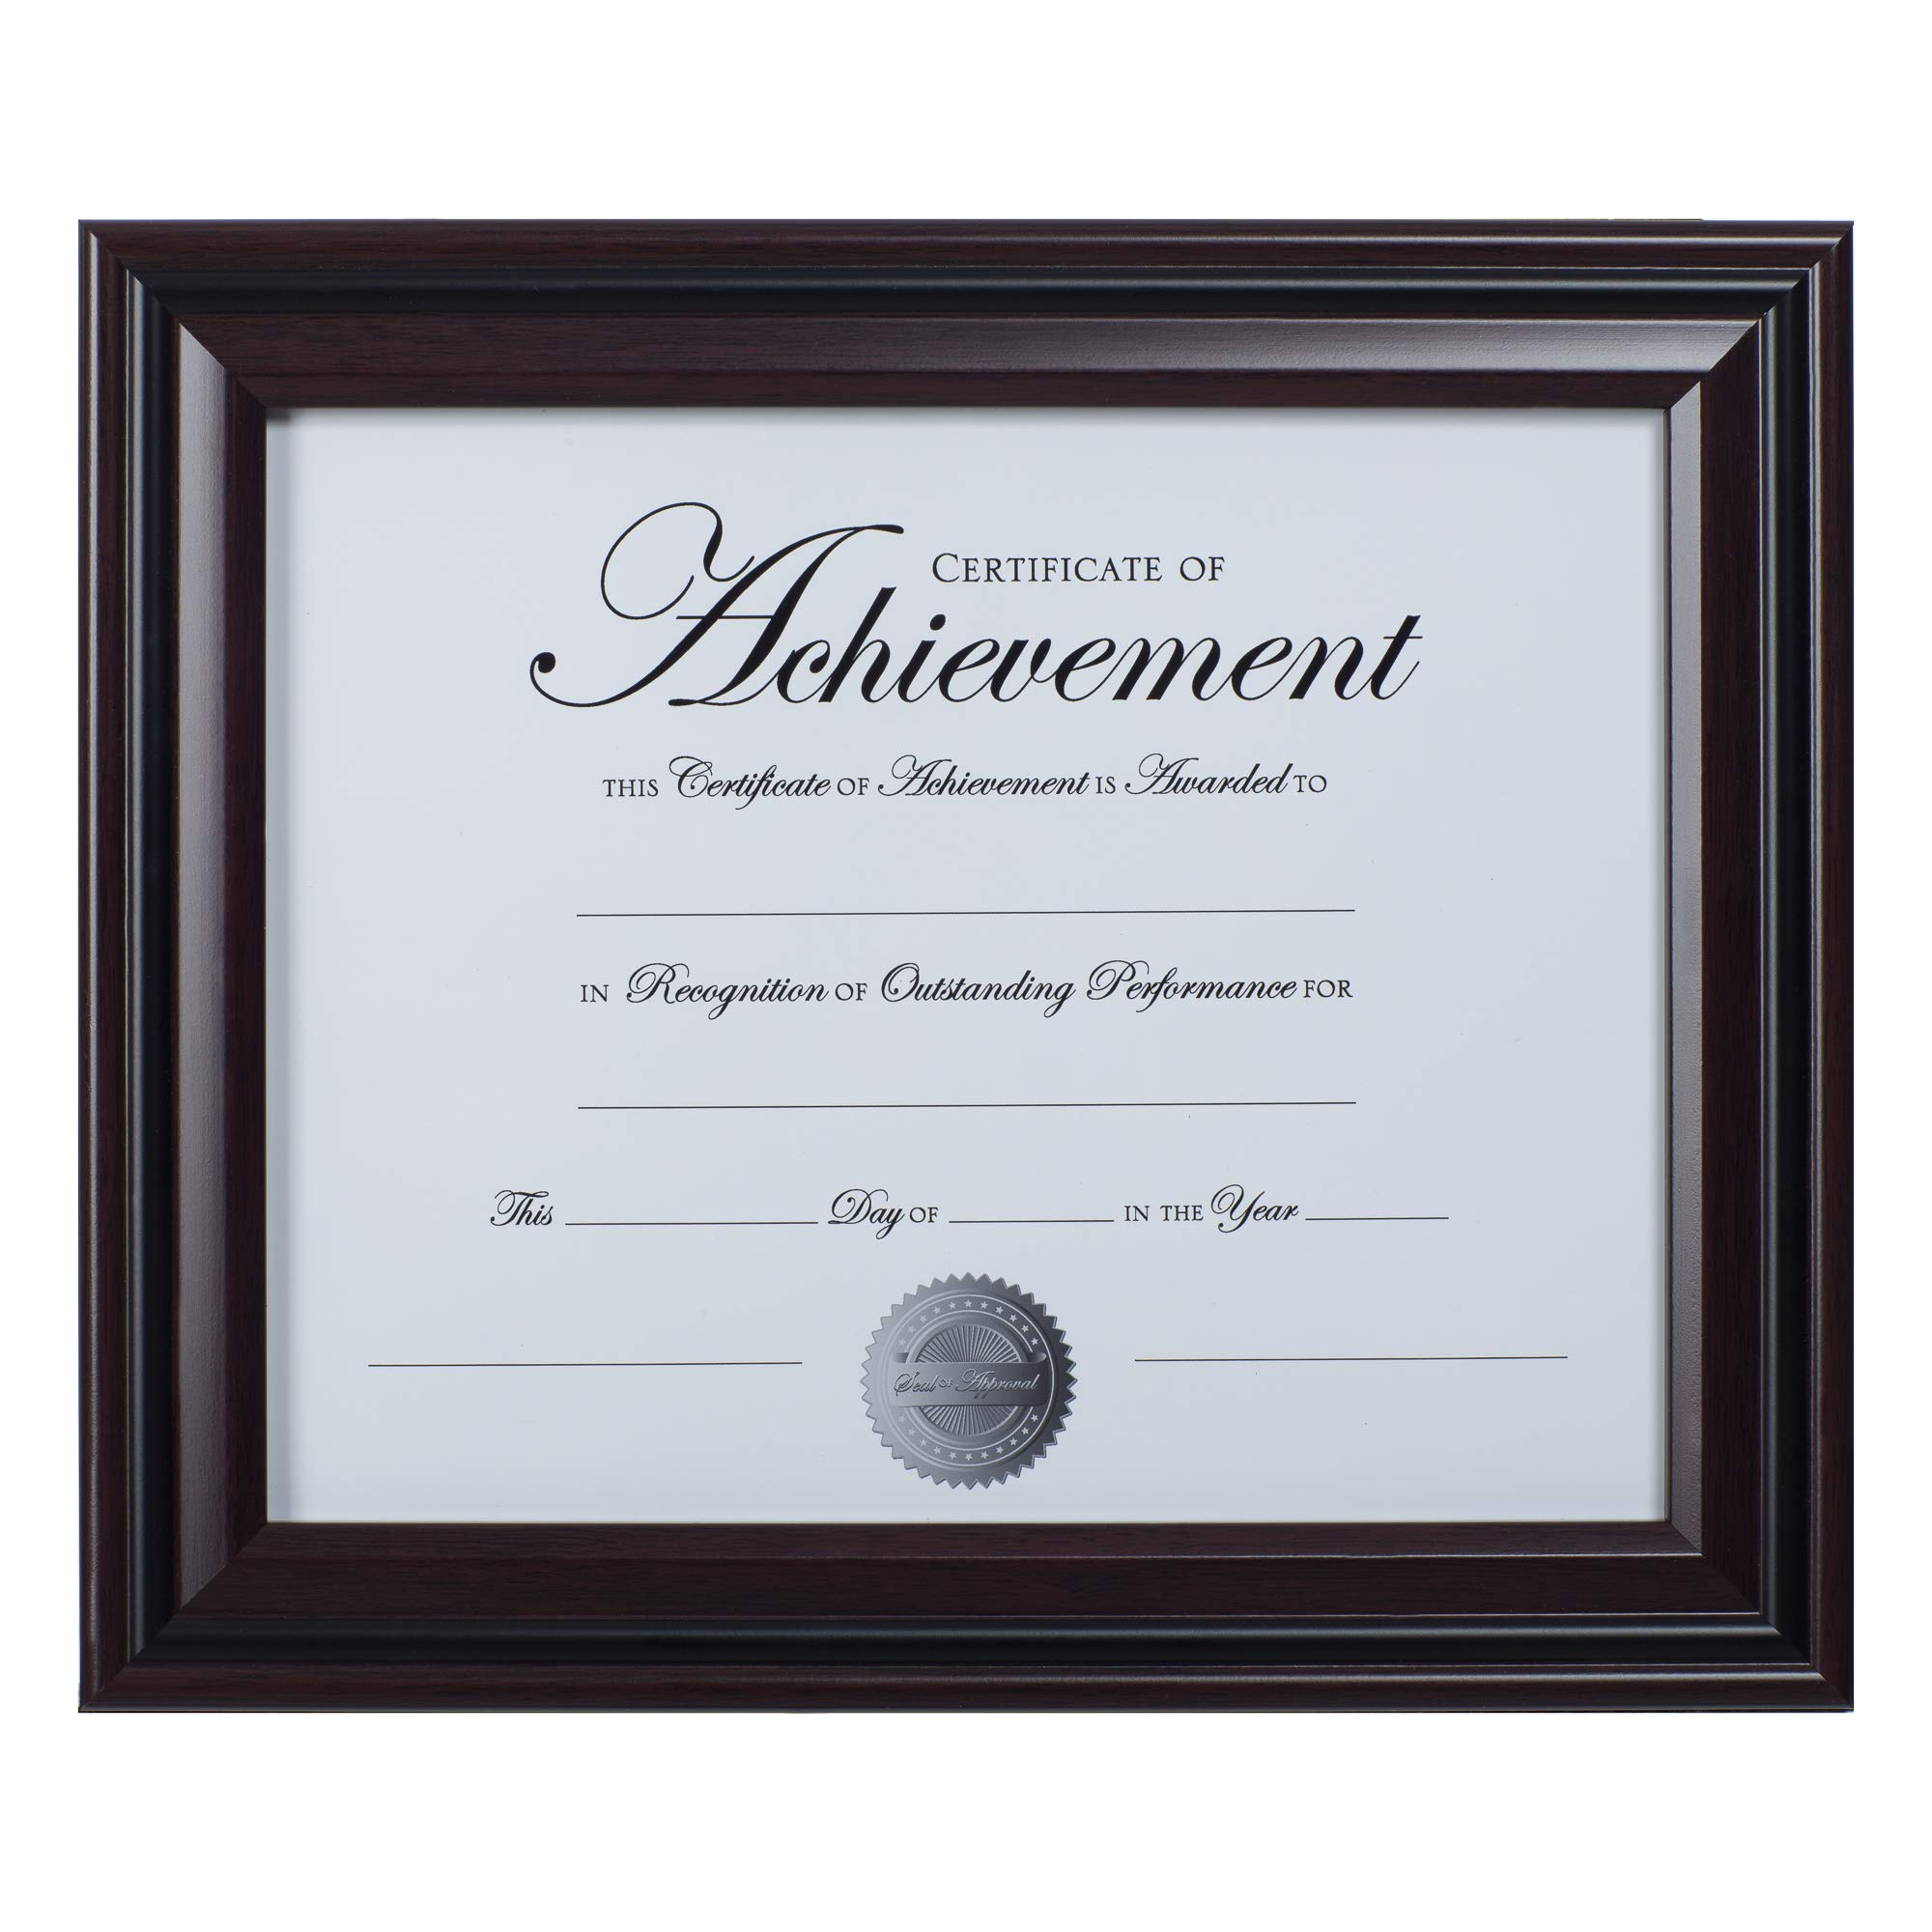 Dax 8.5x11 Classic Rosewood and Black Document Frame, Wall or Table Top Display by DAX